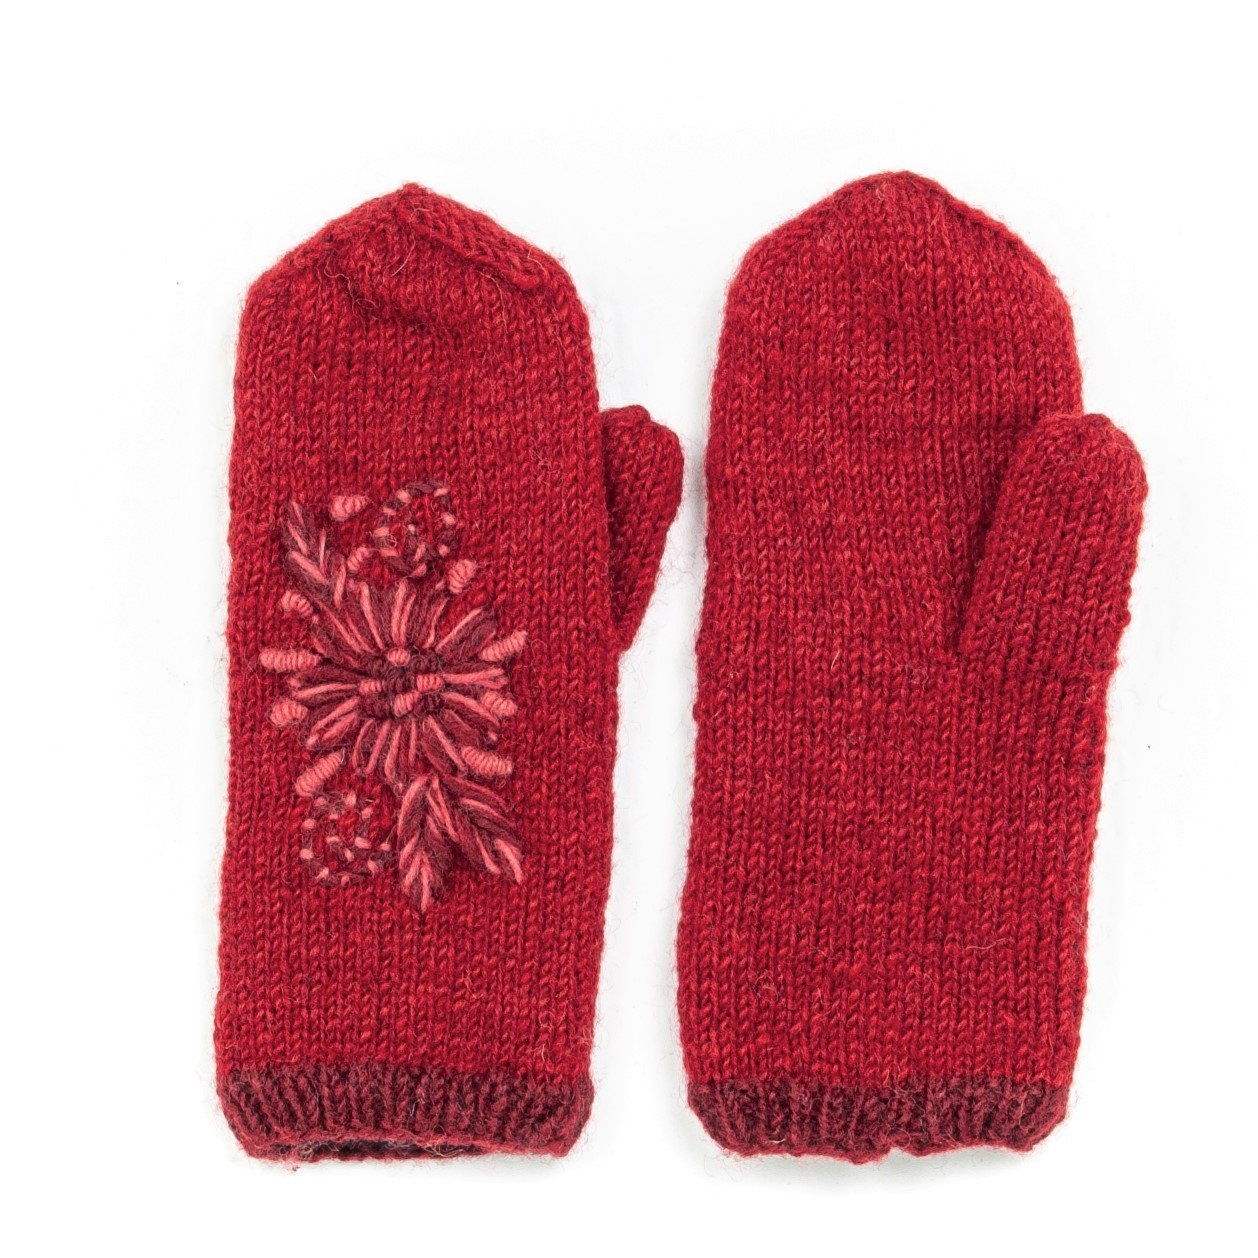 Everly Mittens